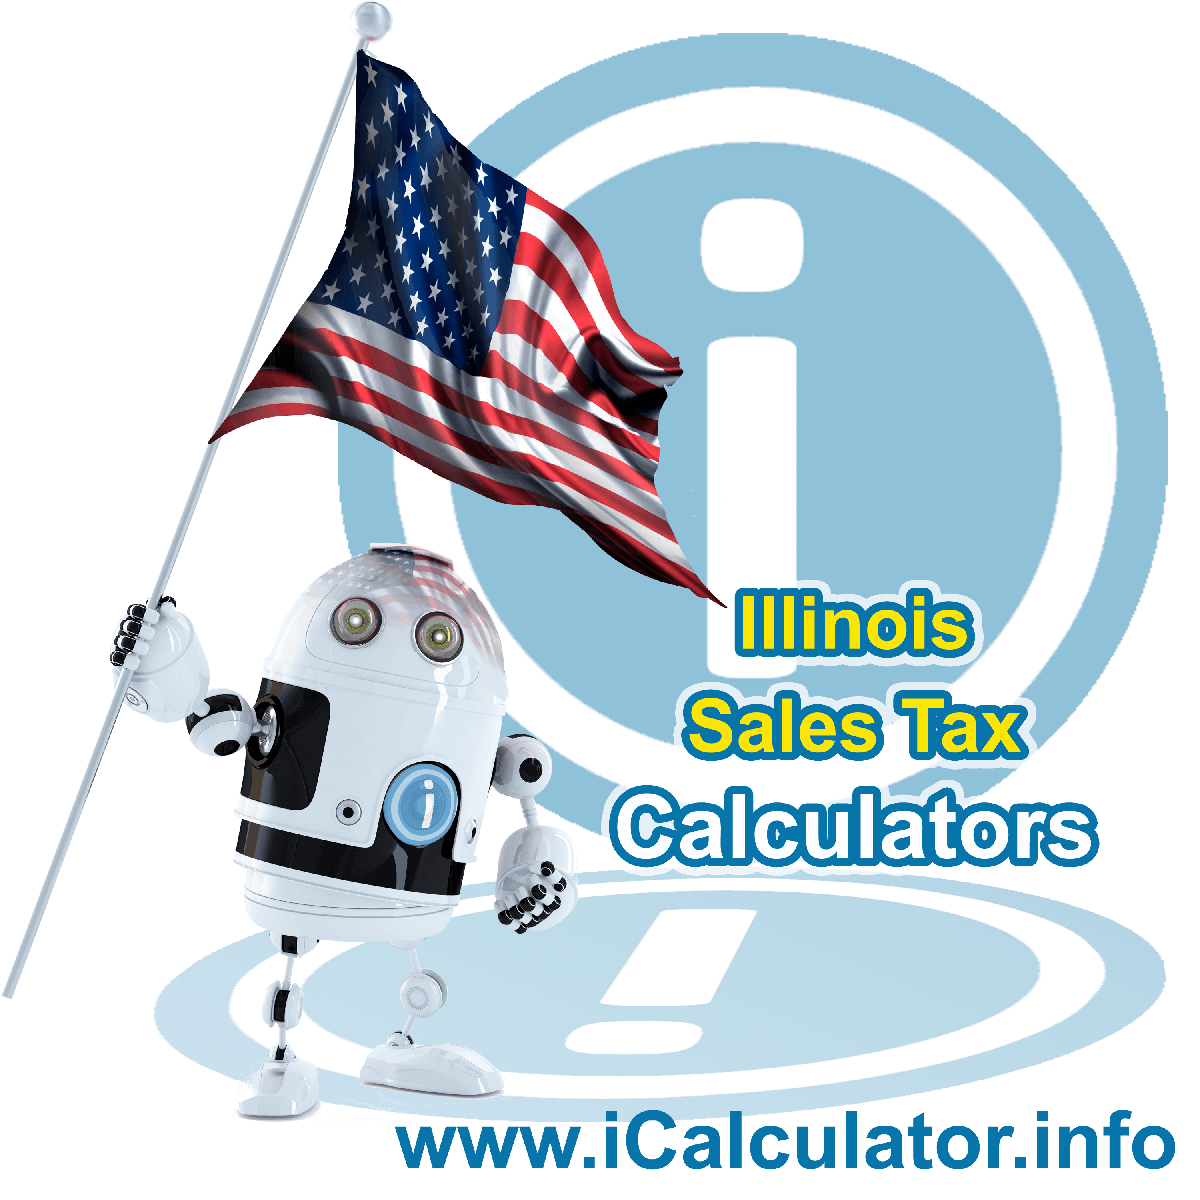 Westmont Sales Rates: This image illustrates a calculator robot calculating Westmont sales tax manually using the Westmont Sales Tax Formula. You can use this information to calculate Westmont Sales Tax manually or use the Westmont Sales Tax Calculator to calculate sales tax online.